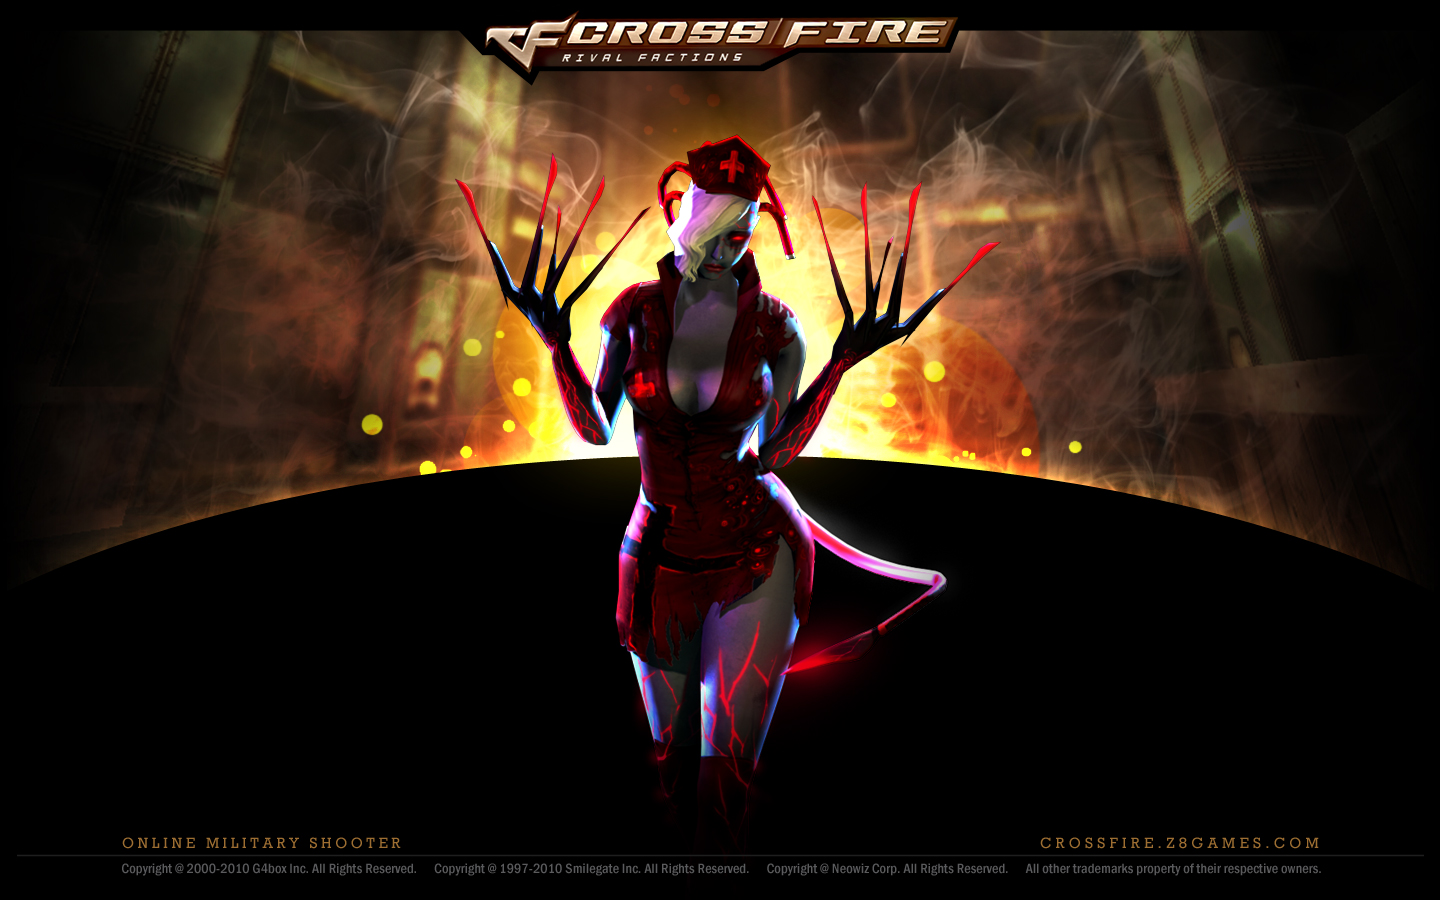 wallpaper crossfire collection 2011 - photo #21